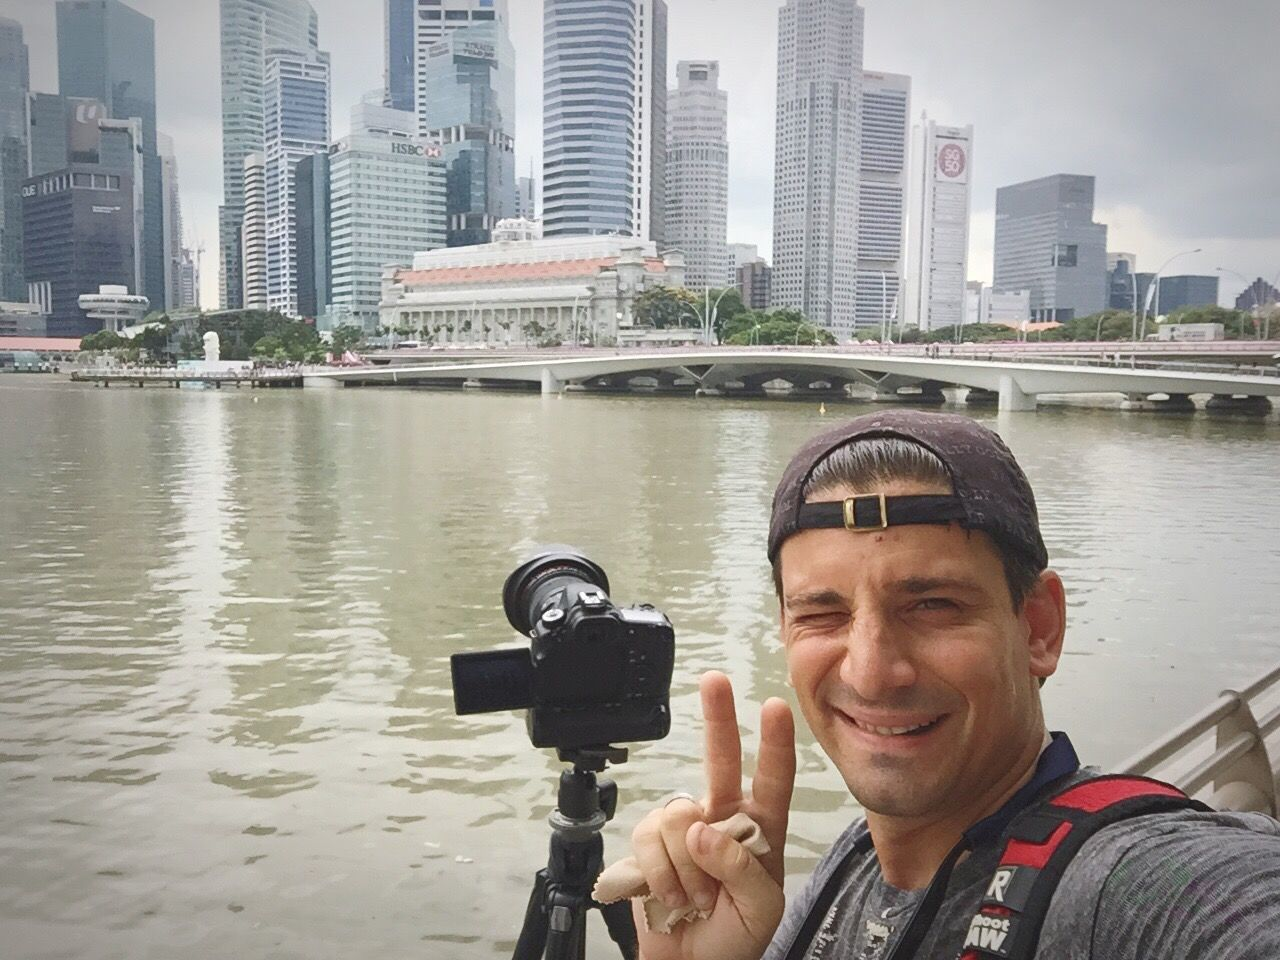 When there is no one to photograph me photographing the rest of the world...I do it the good all fashiond way - oh yeah, I have selfies 25 years back in time;) Follow me Friends! Selfie ✌ Selfies Selfienation Taking Photos Photography Photographer Urbanphotography BTS BTS Photography Singapore Singapore View Eyeem Singapore Traveling DSLR Dslrphotography Photographers Marinabay Feel The Journey